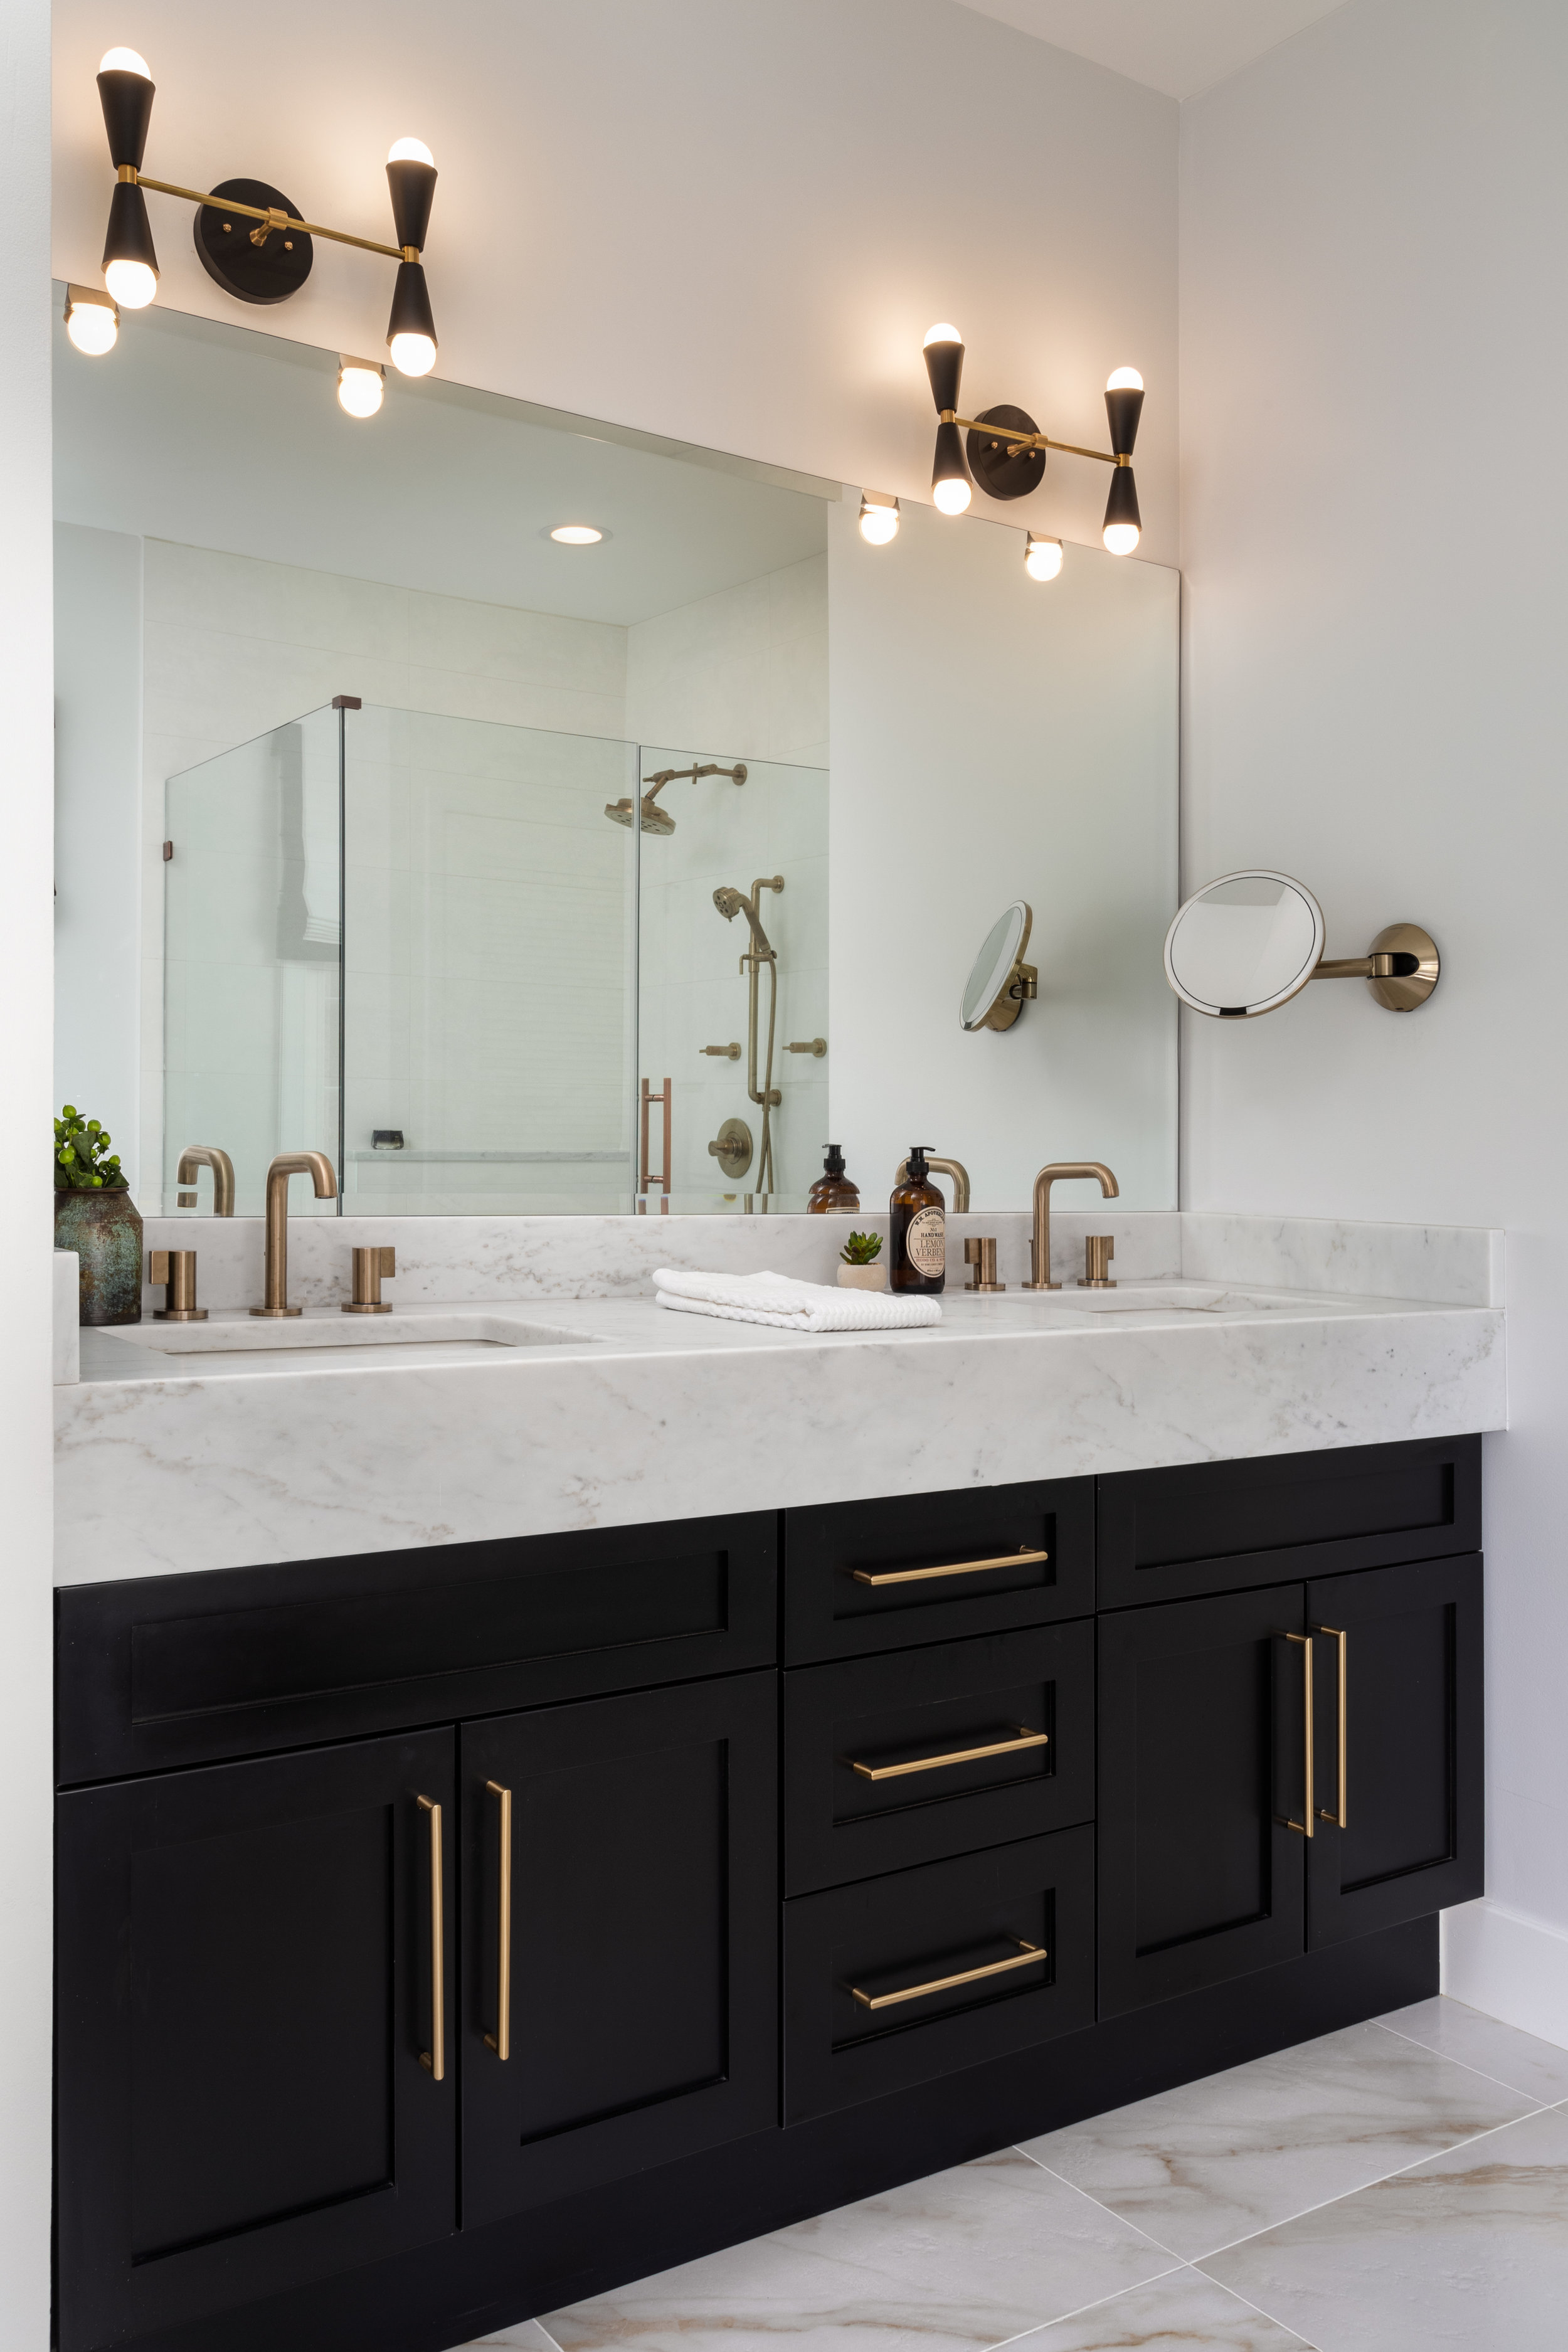 Brass hardware adds a warm and delicate contrast to the black cabinets.